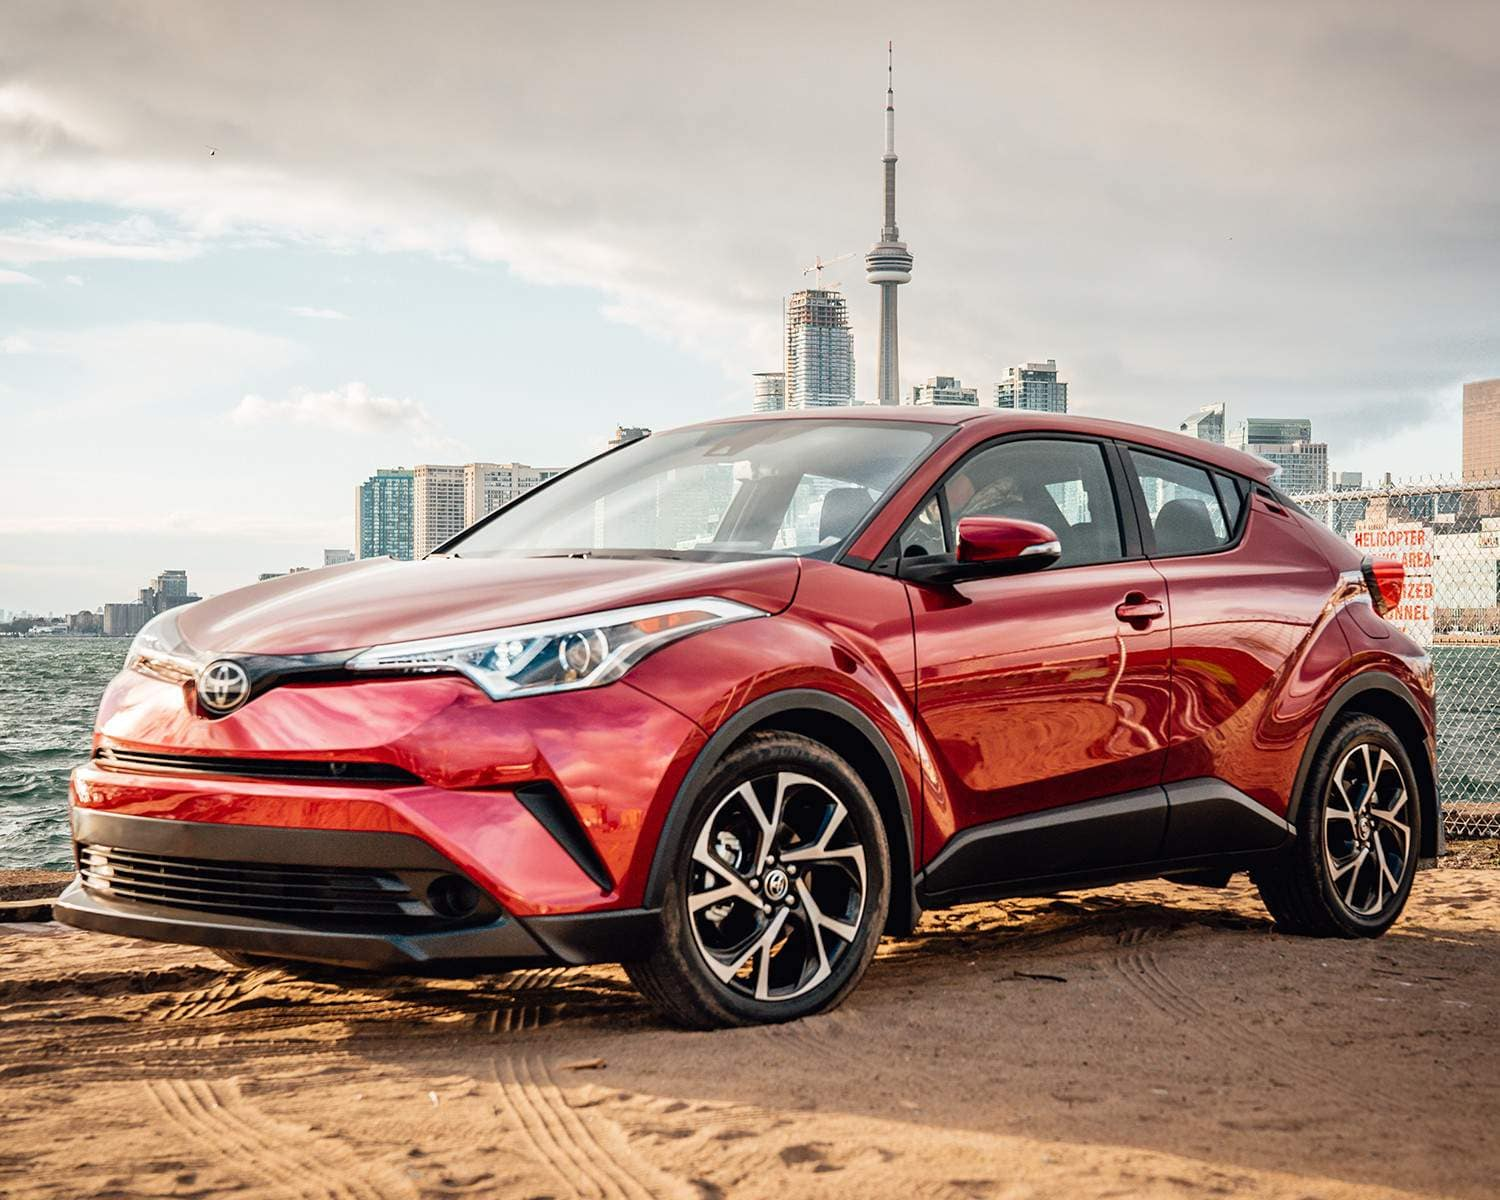 2018 Toyota C-HR Performance Overview at Red Deer Toyota in Red Deer, AB